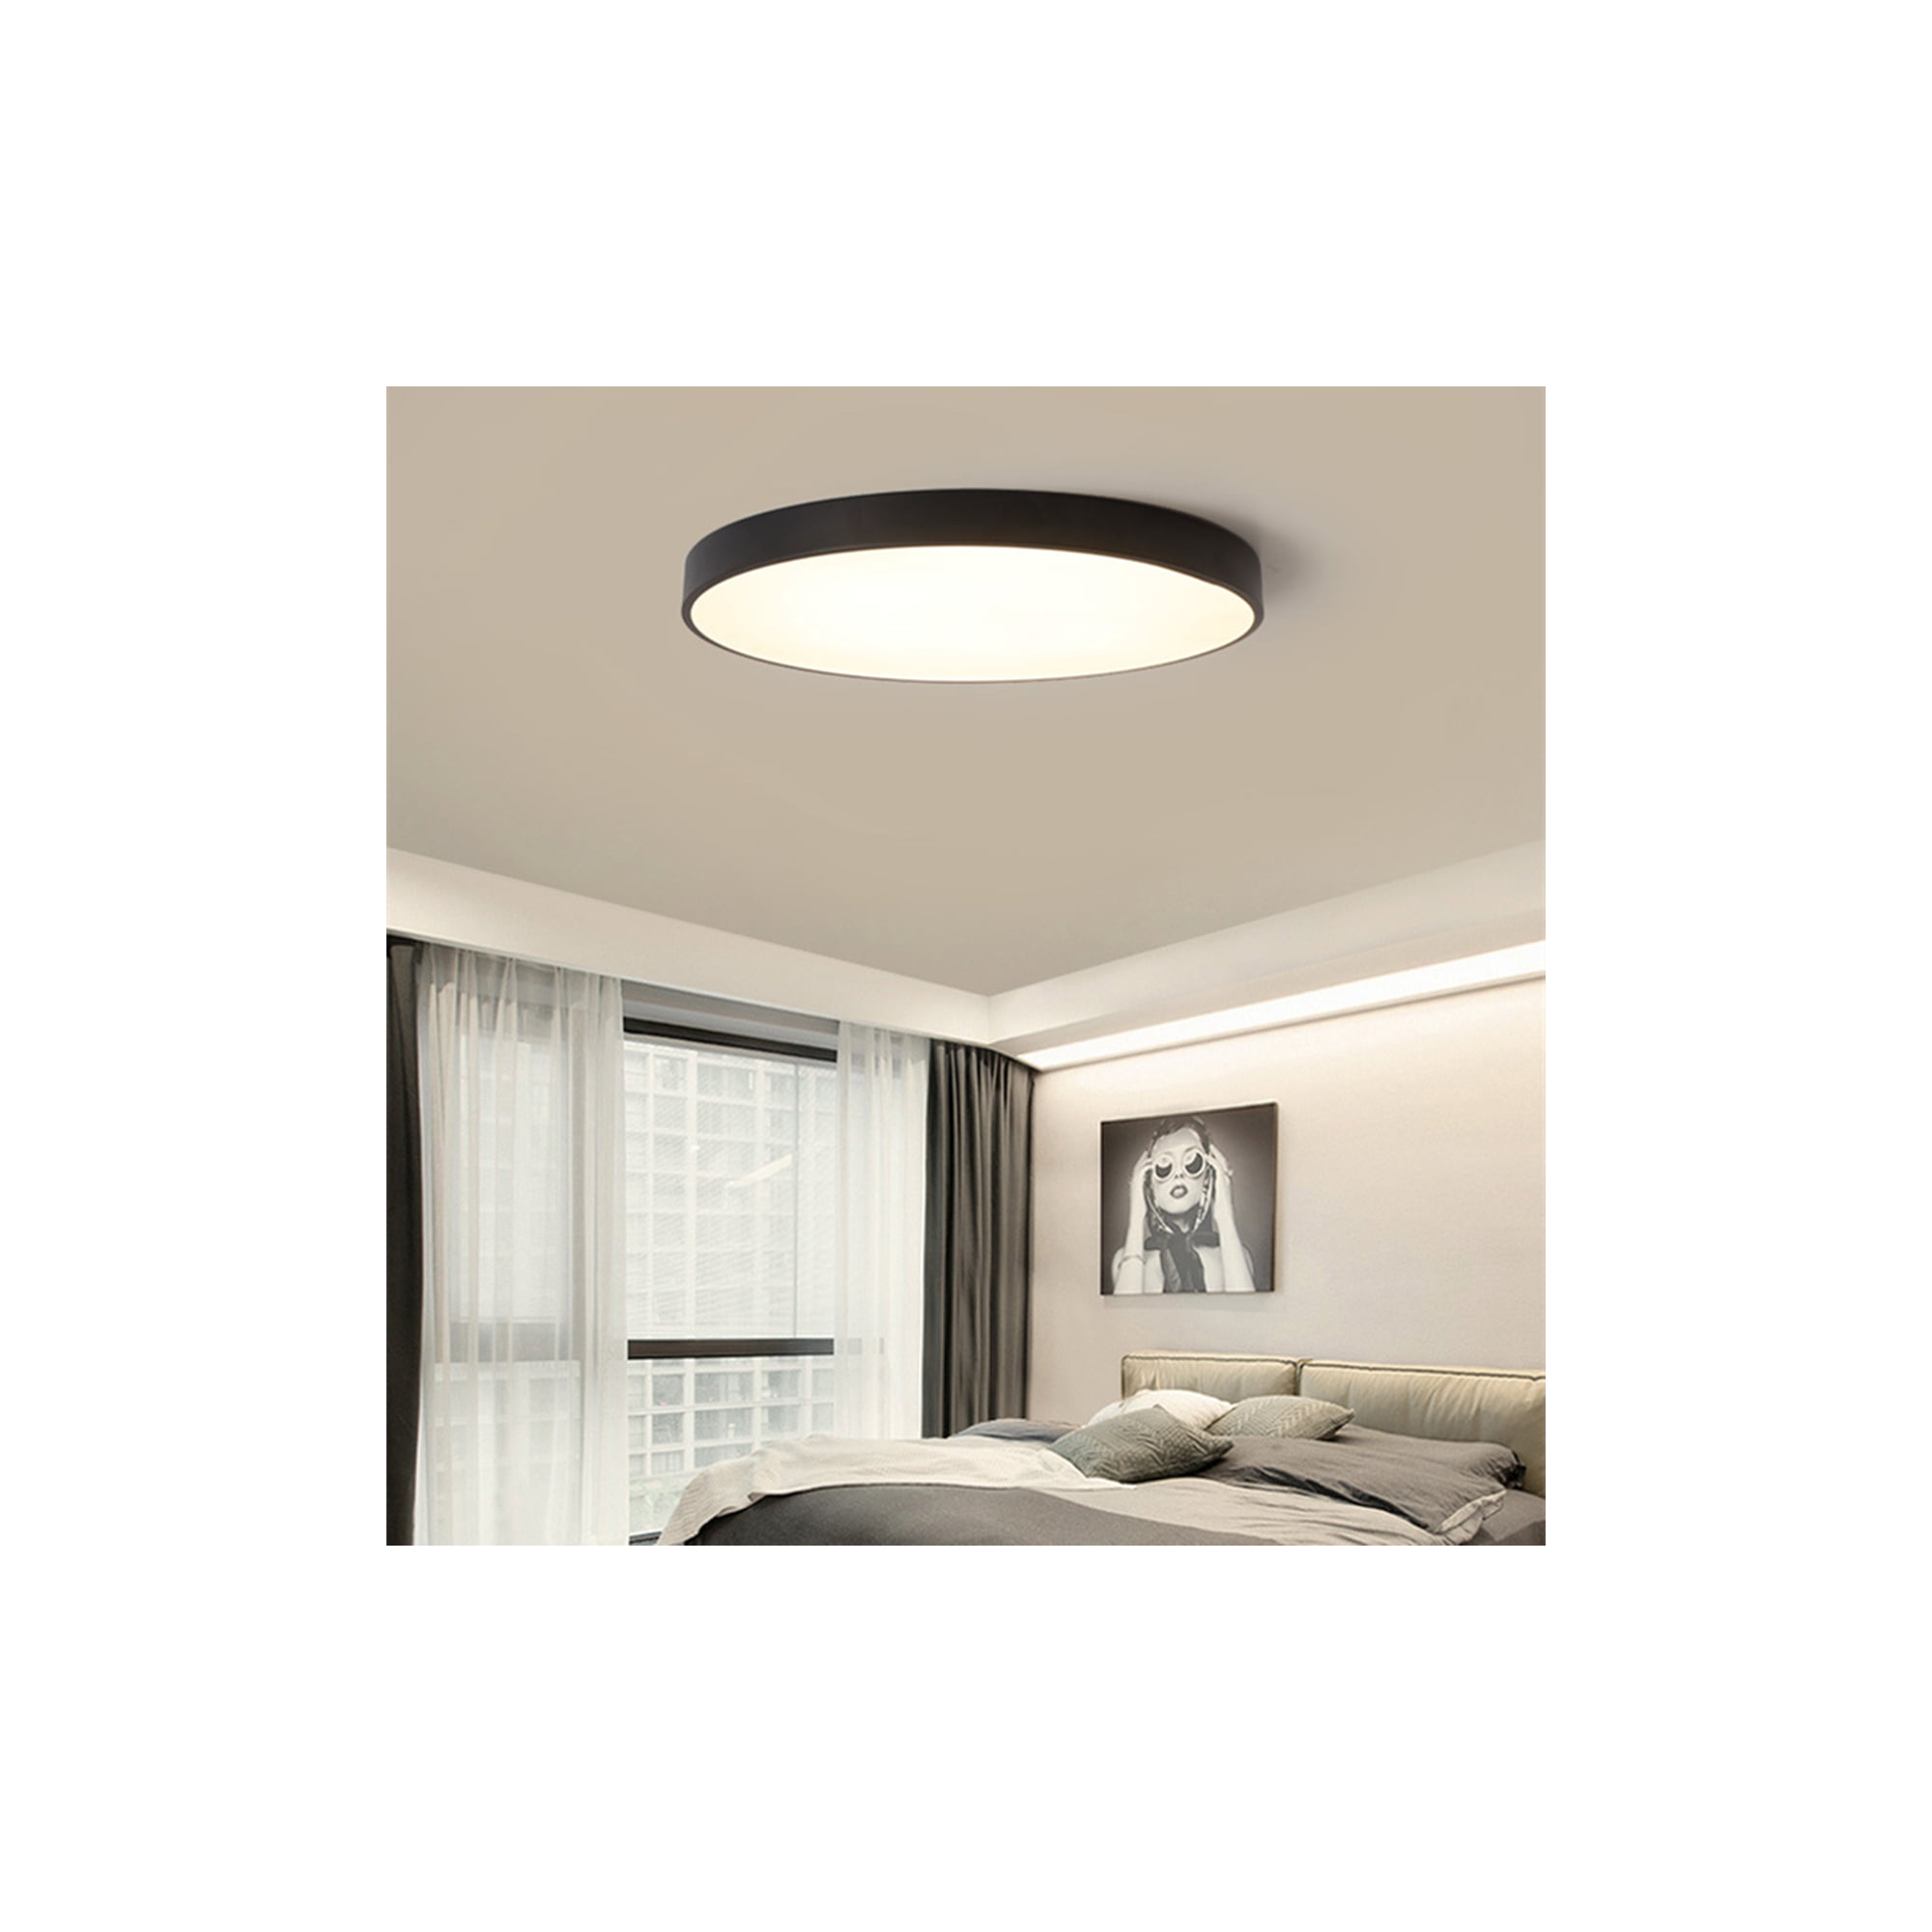 11W LED Ceiling Light Fixture with Remote Control Dimmable Color LED  Ceiling Lights Surface Mount Fixture for Living Room Bedroom Dining Room